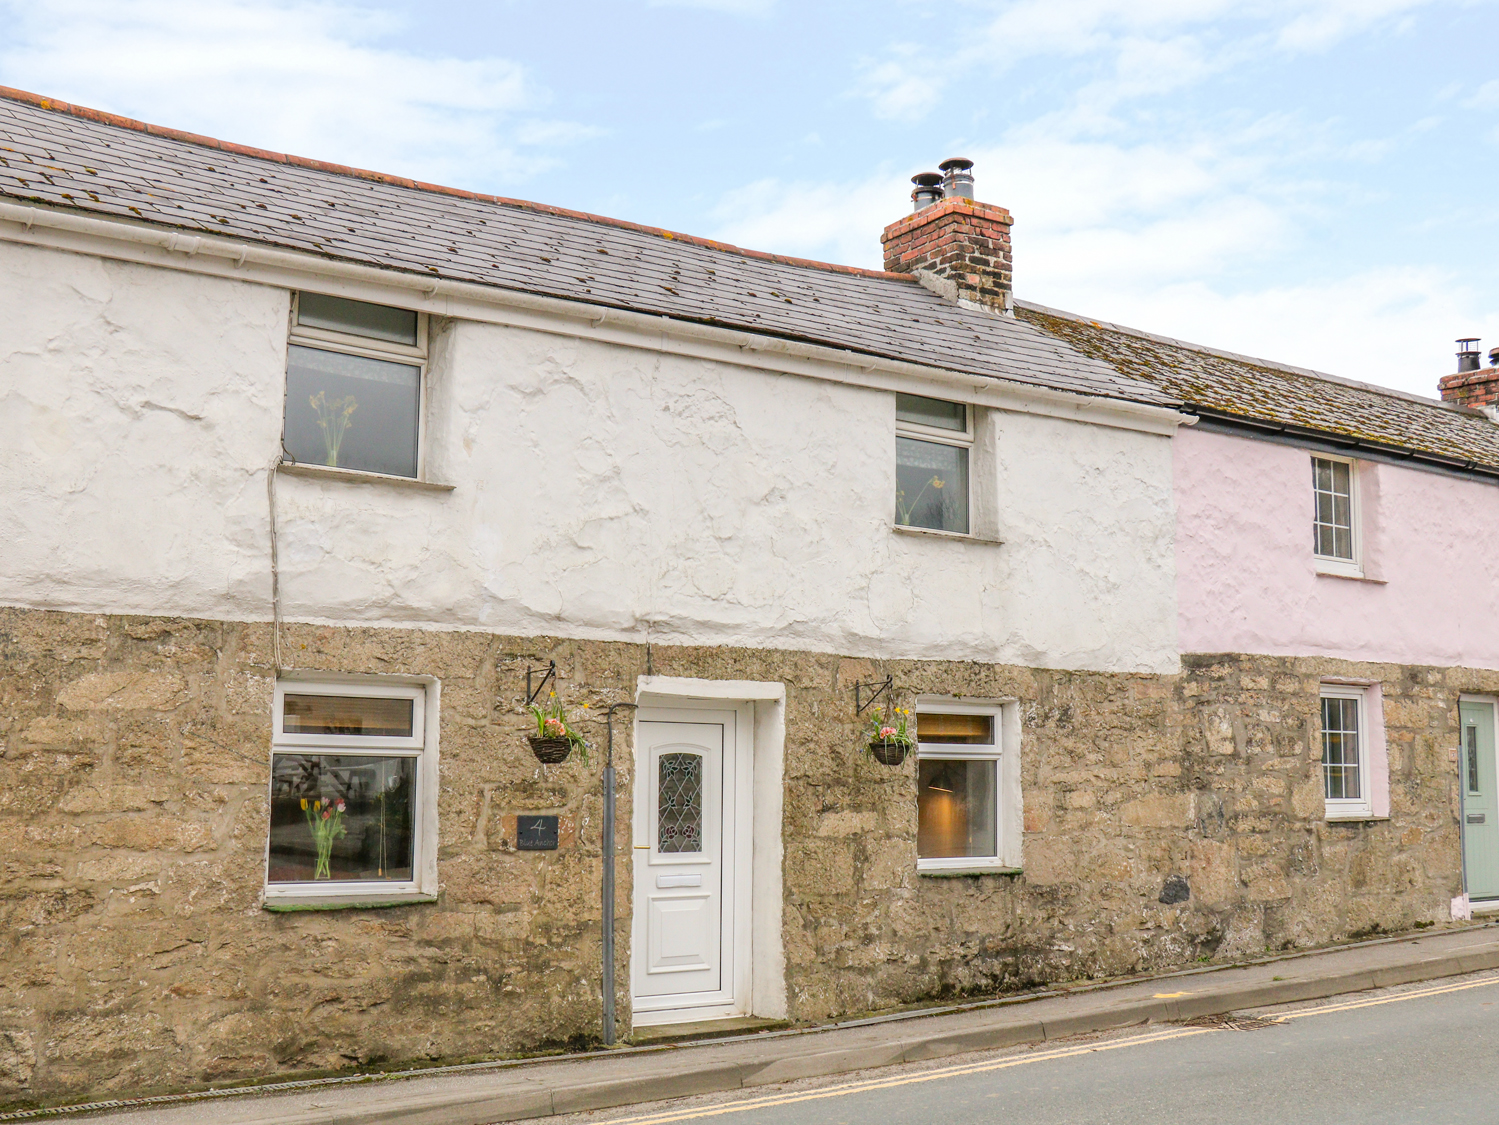 3 bedroom Cottage for rent in Newquay, Cornwall